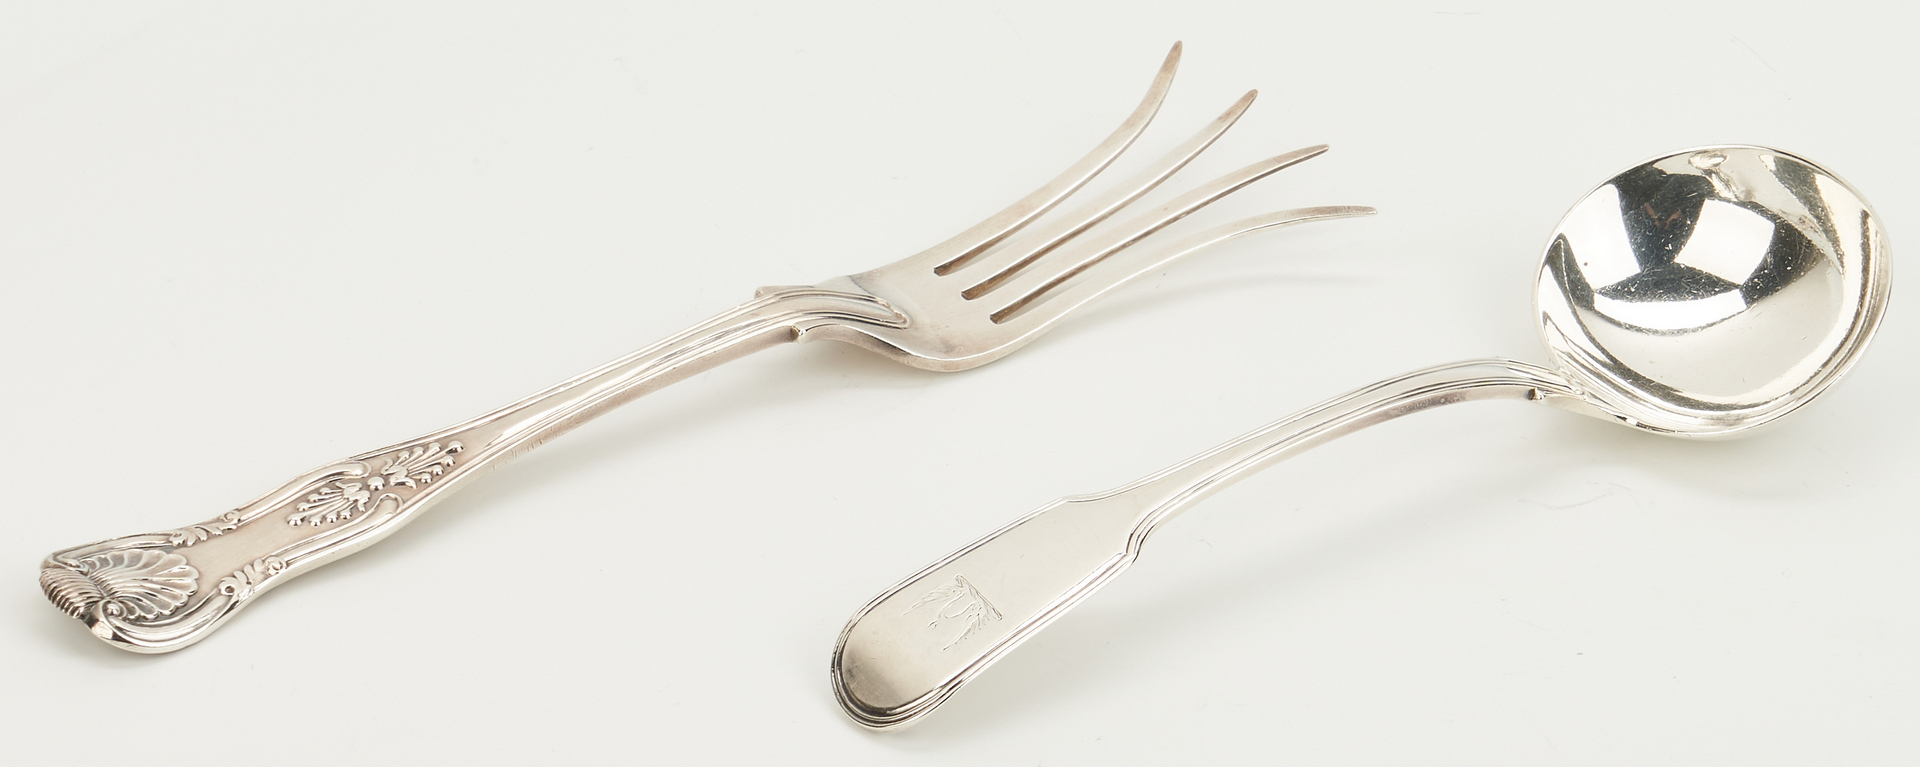 Lot 245: 9 Serving Items, incl. Cream Jug, Asparagus Tongs